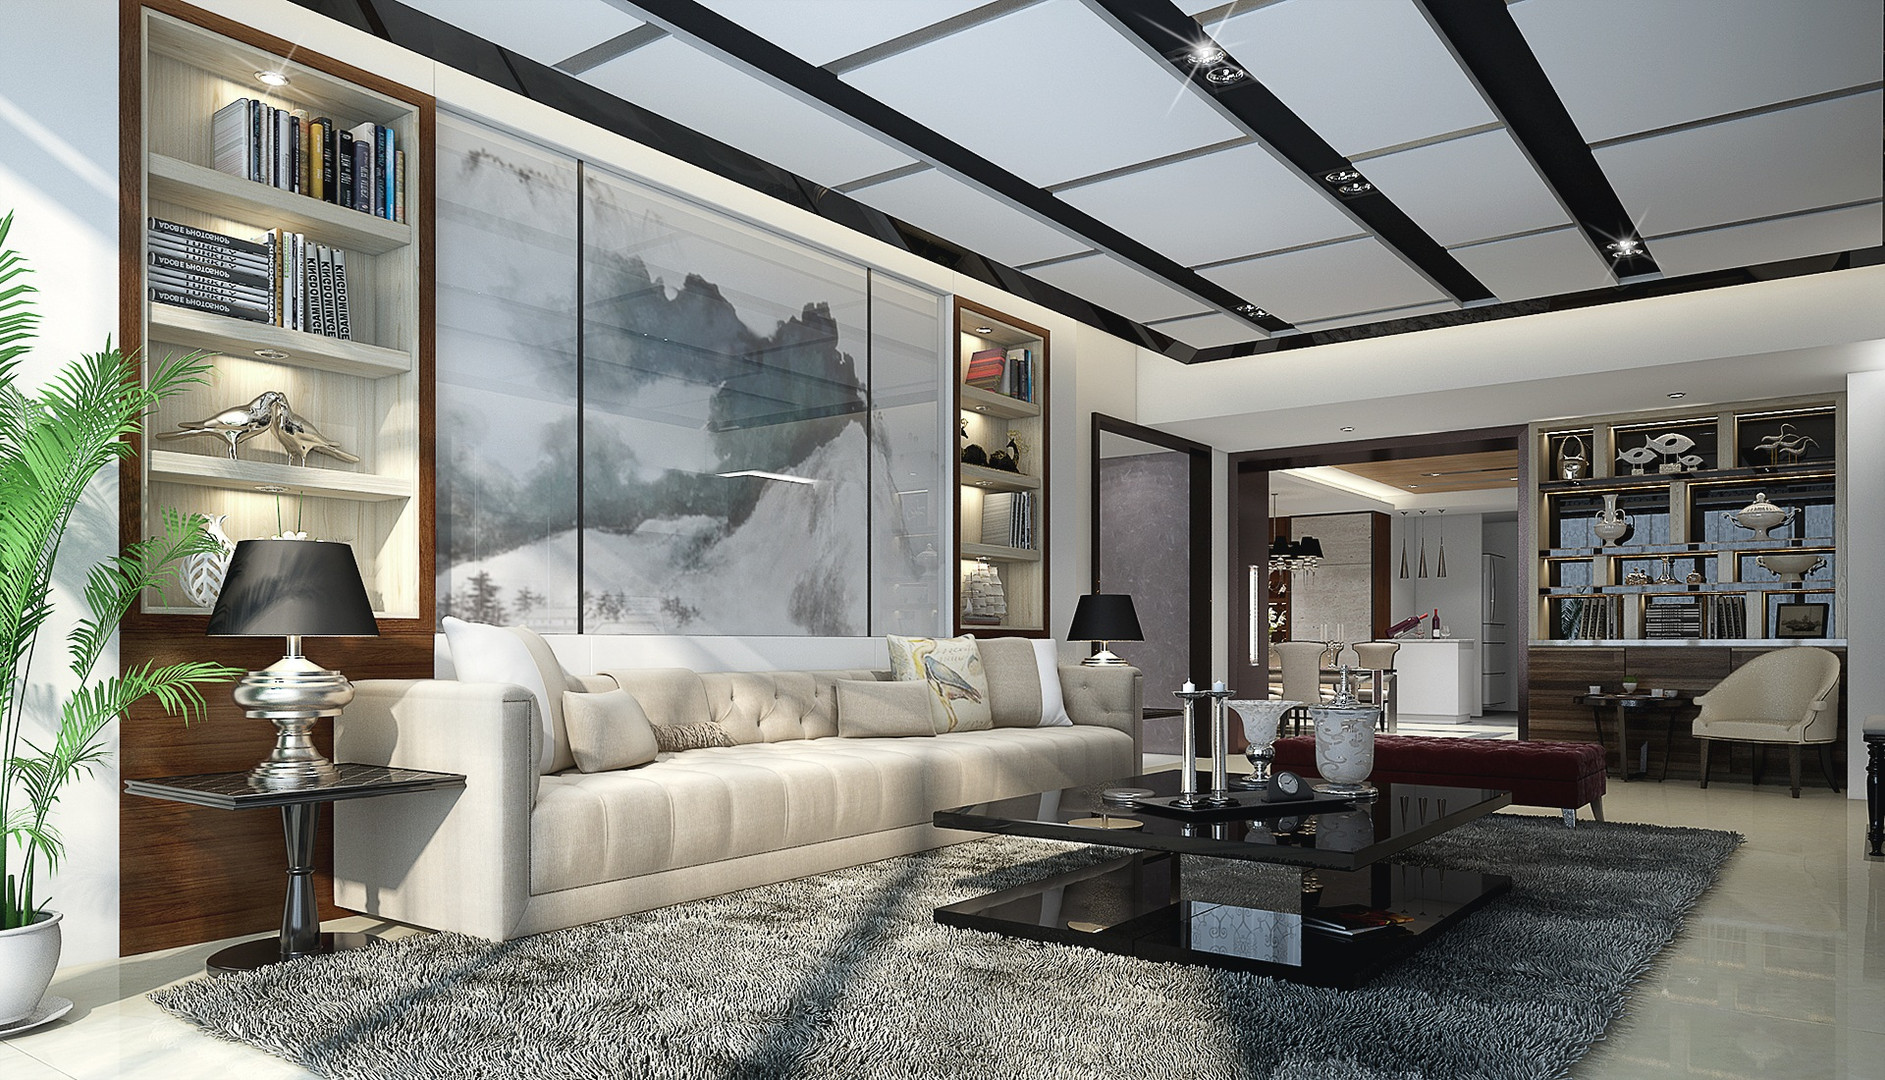 Real Estate 3D Rendering Service